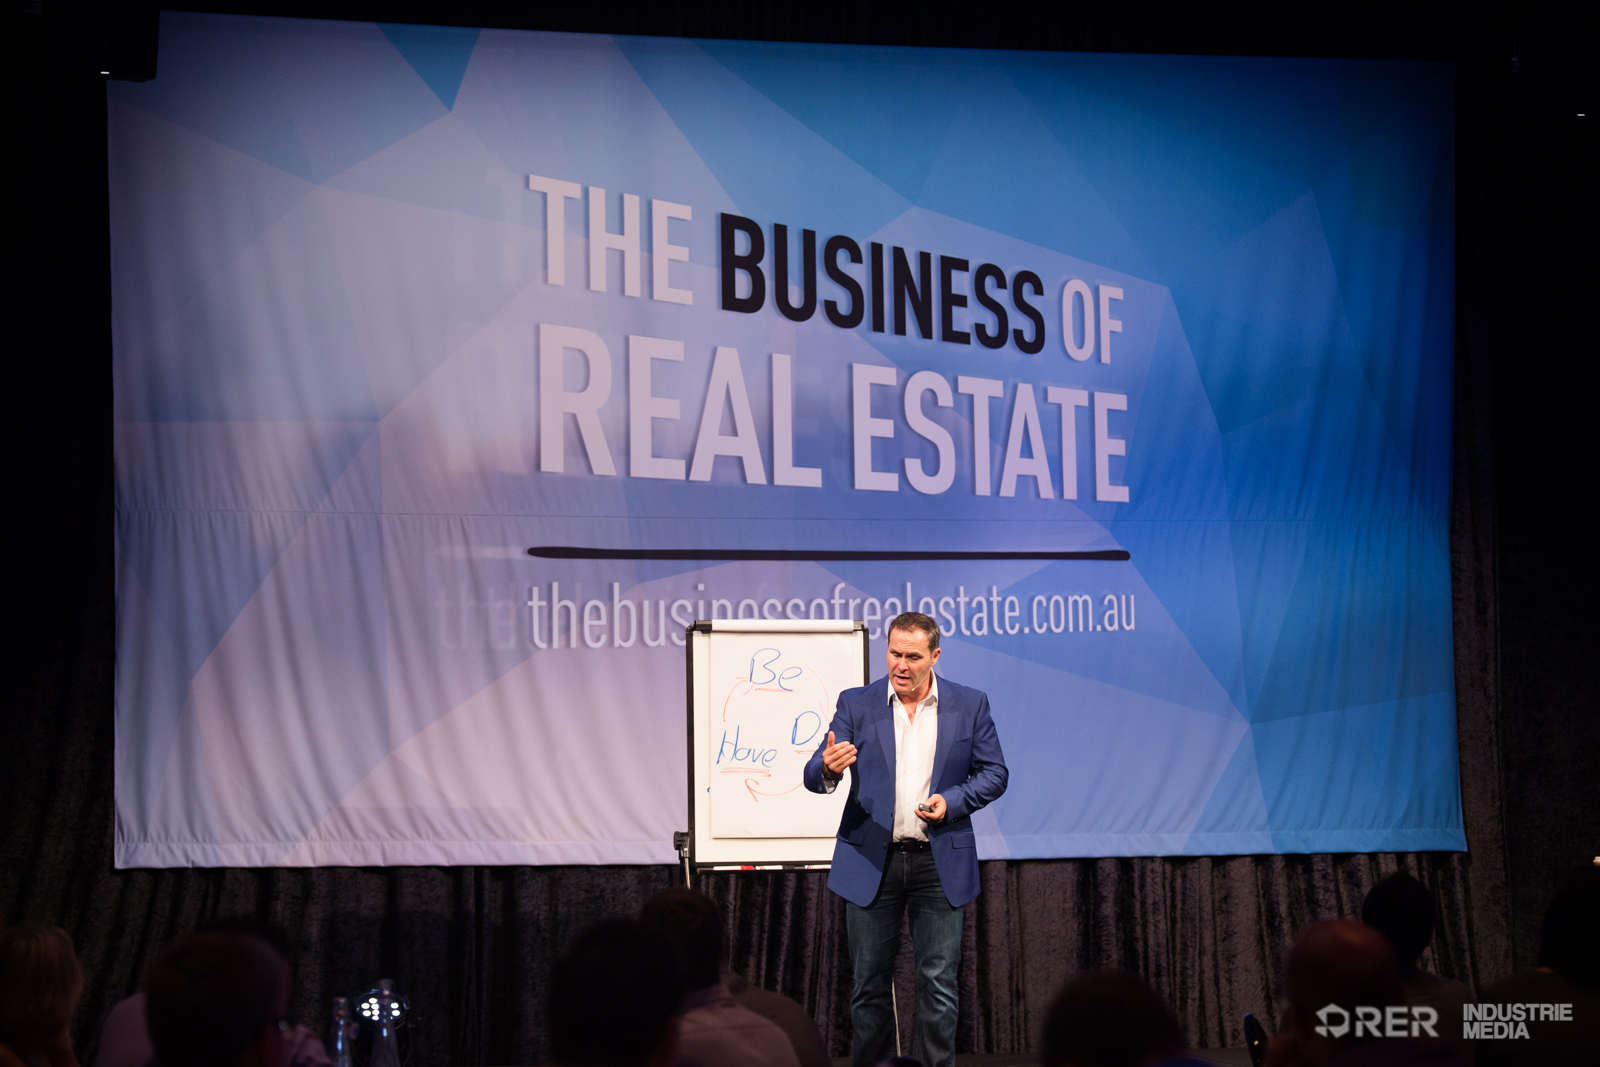 https://www.thebusinessofrealestate.com.au/wp-content/uploads/2016/09/RER_BUSINESS_OF_REAL_ESTATE_DAY_2-13.jpg